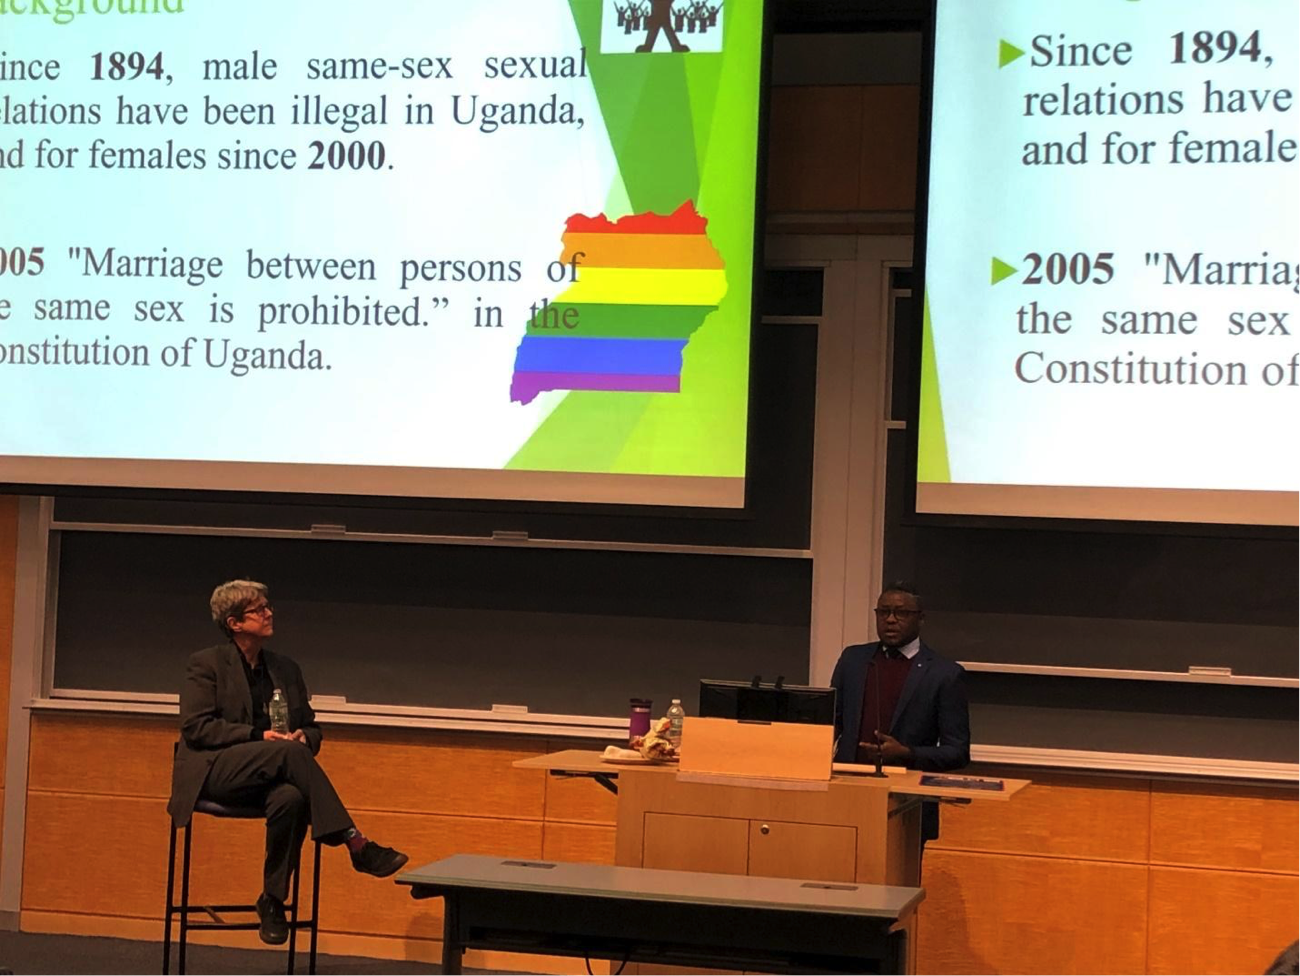 LGBTQ Rights in a Global Perspective